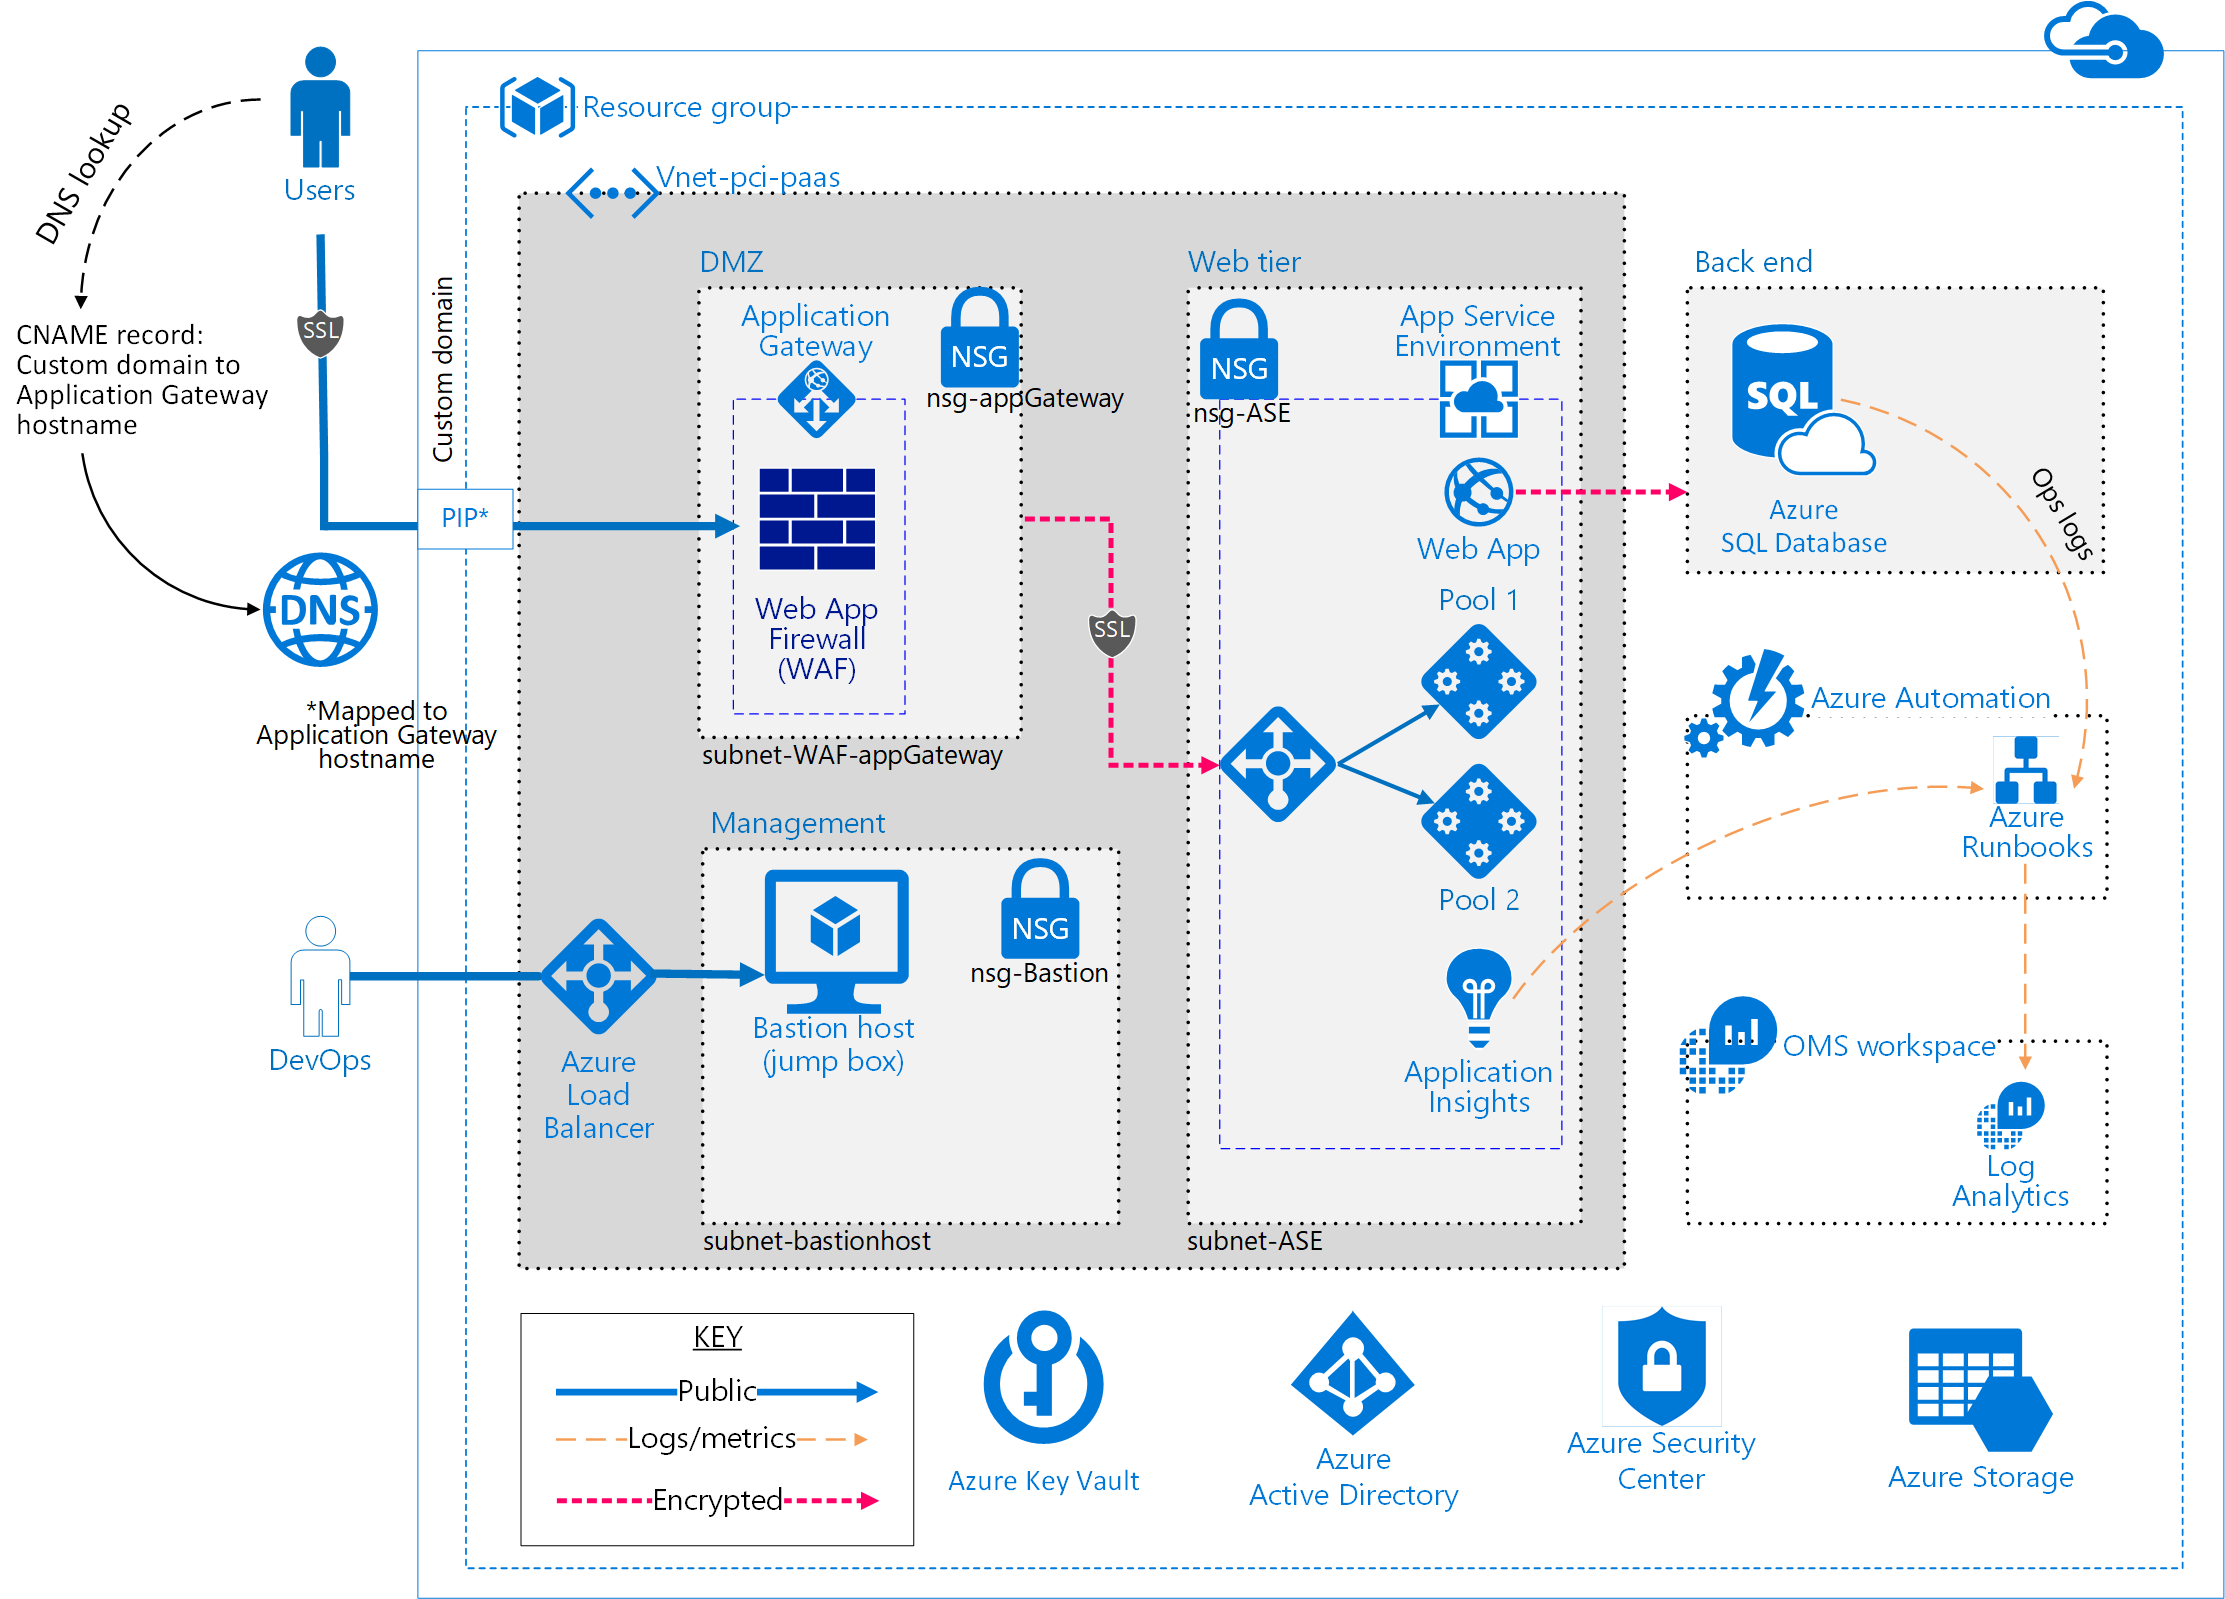 Azure security and compliance blueprint ffiec financial services architectural diagram malvernweather Images